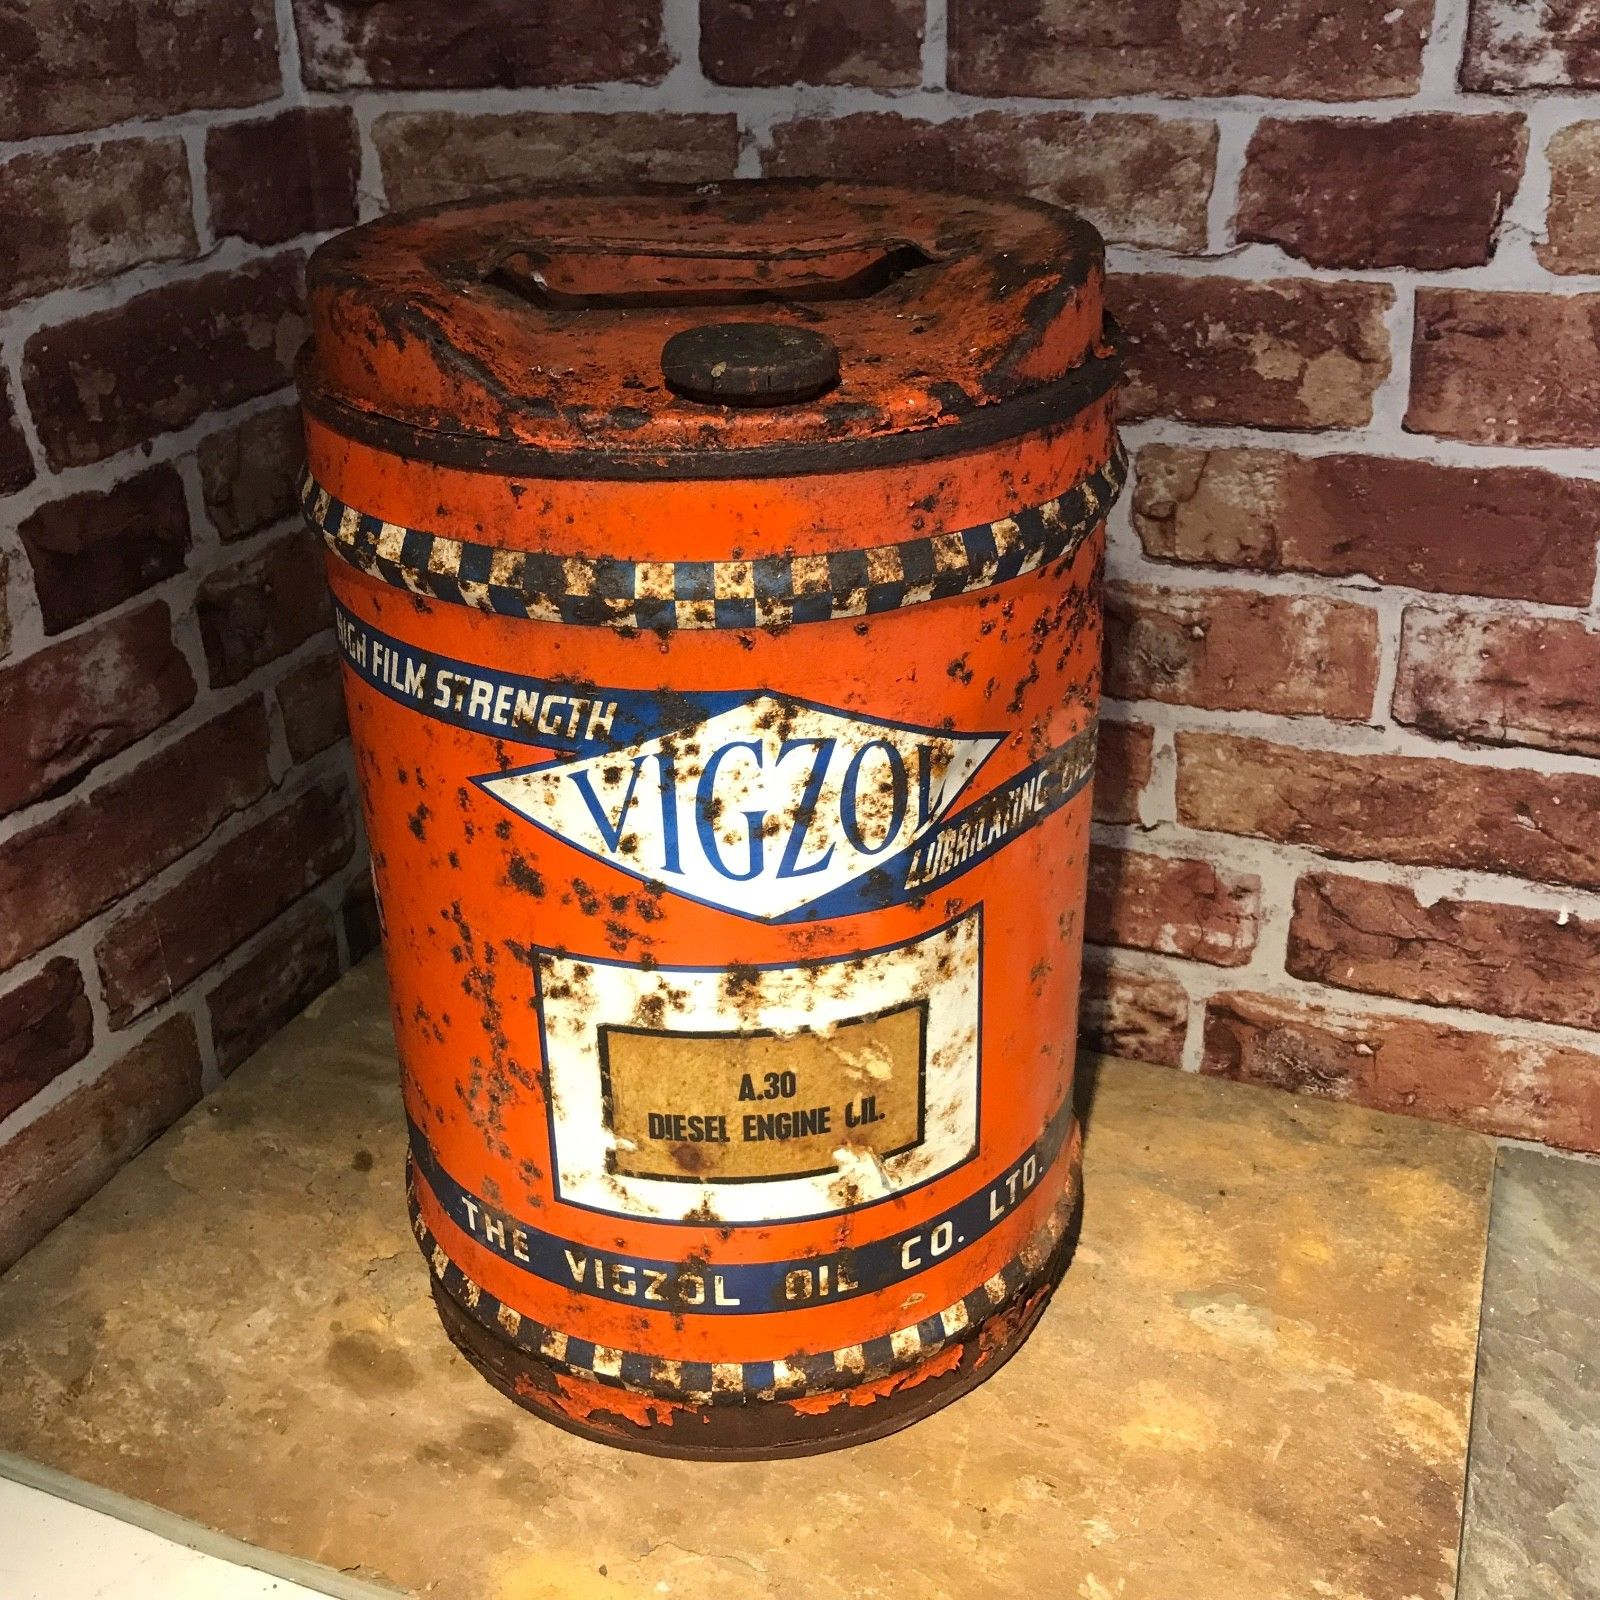 Vigzol motor oil can 5 gallon 2324 for Gallon of motor oil